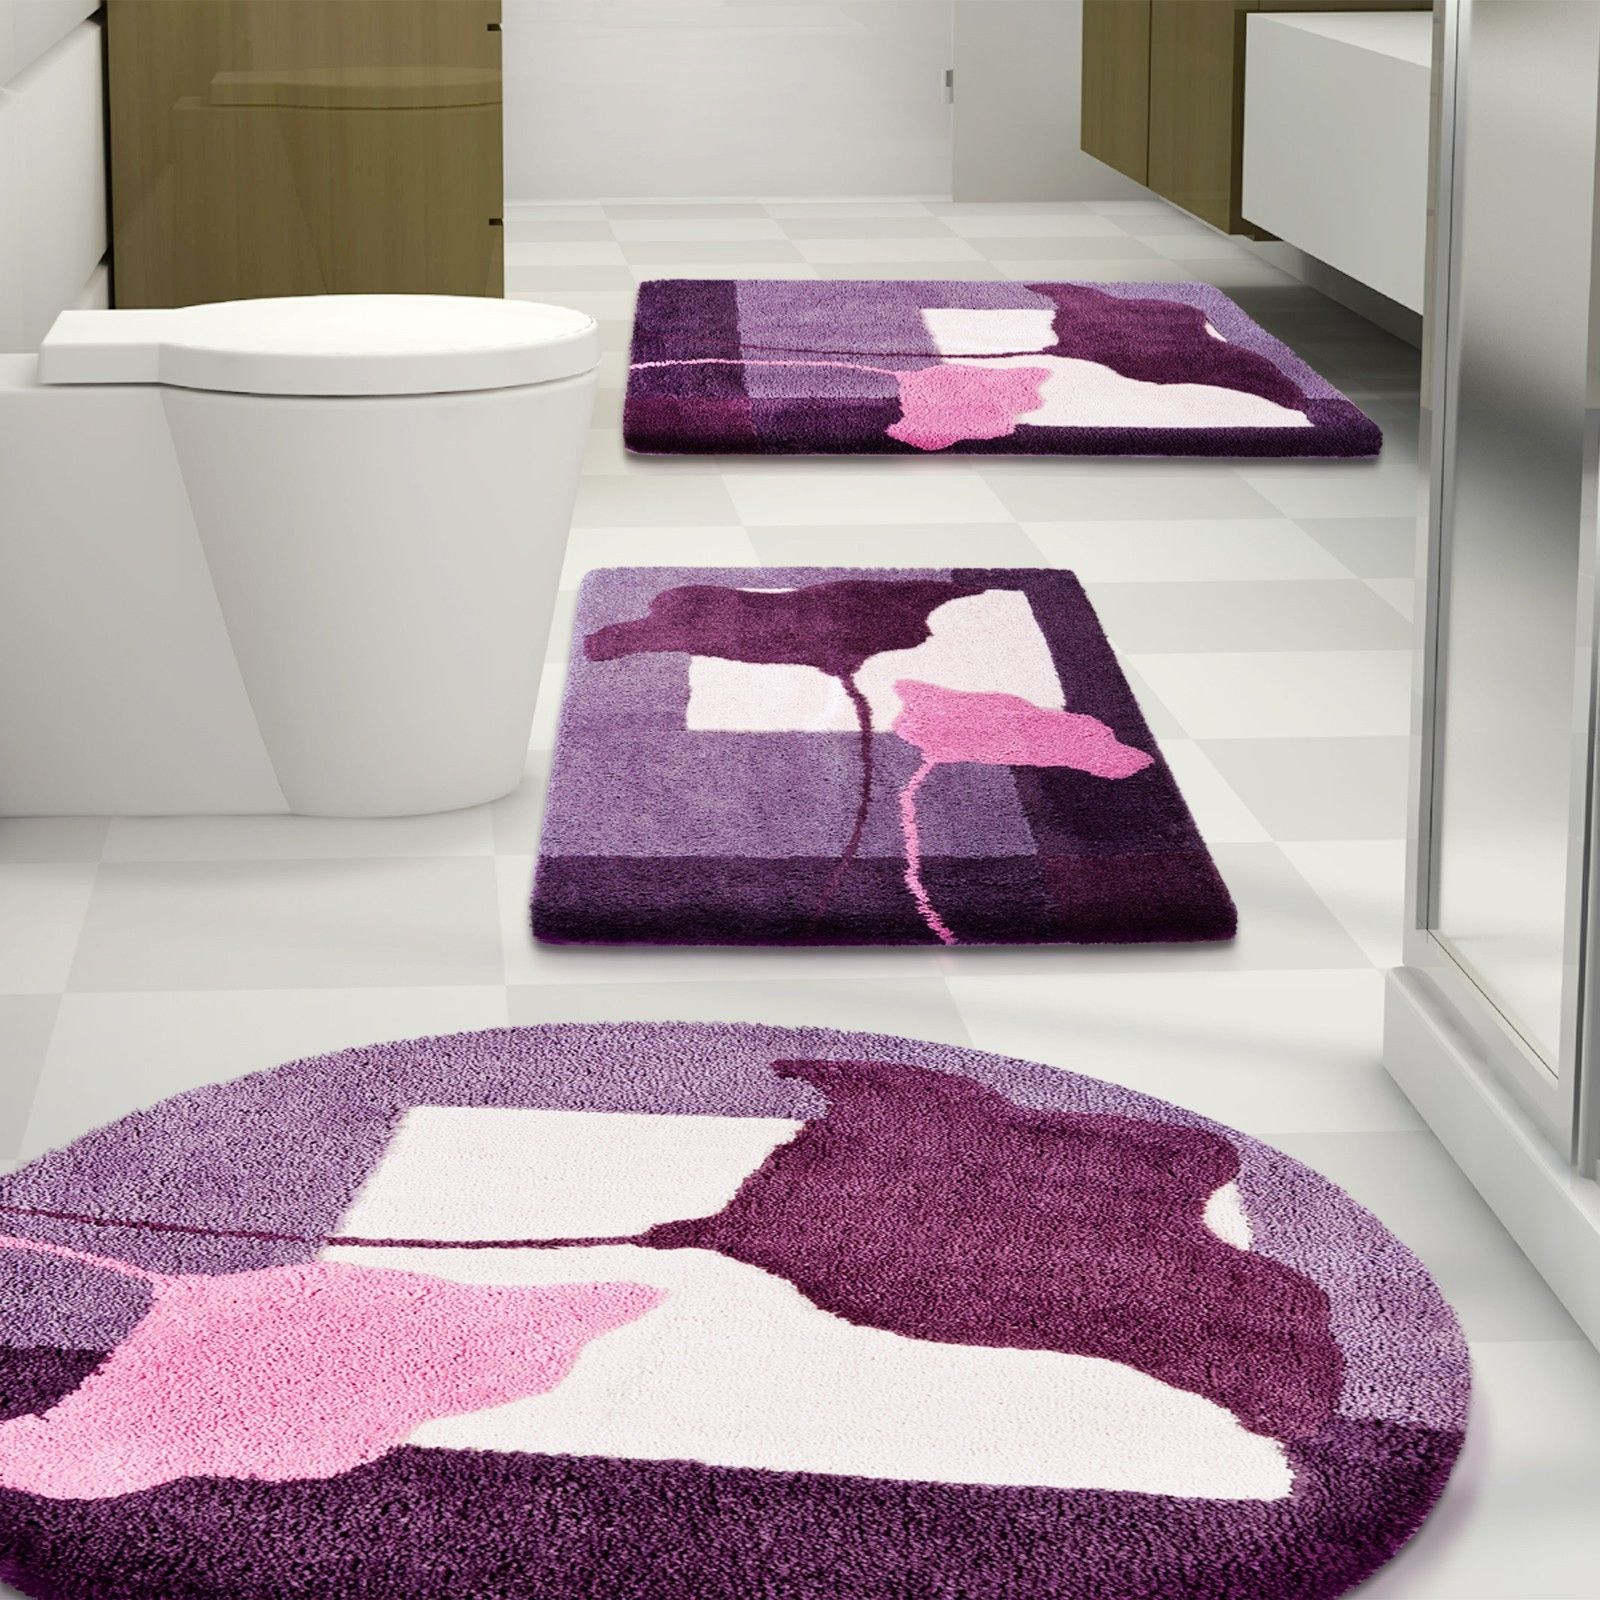 25 Beautiful Bathroom Rugs That Add Extra Coziness Tapete Para